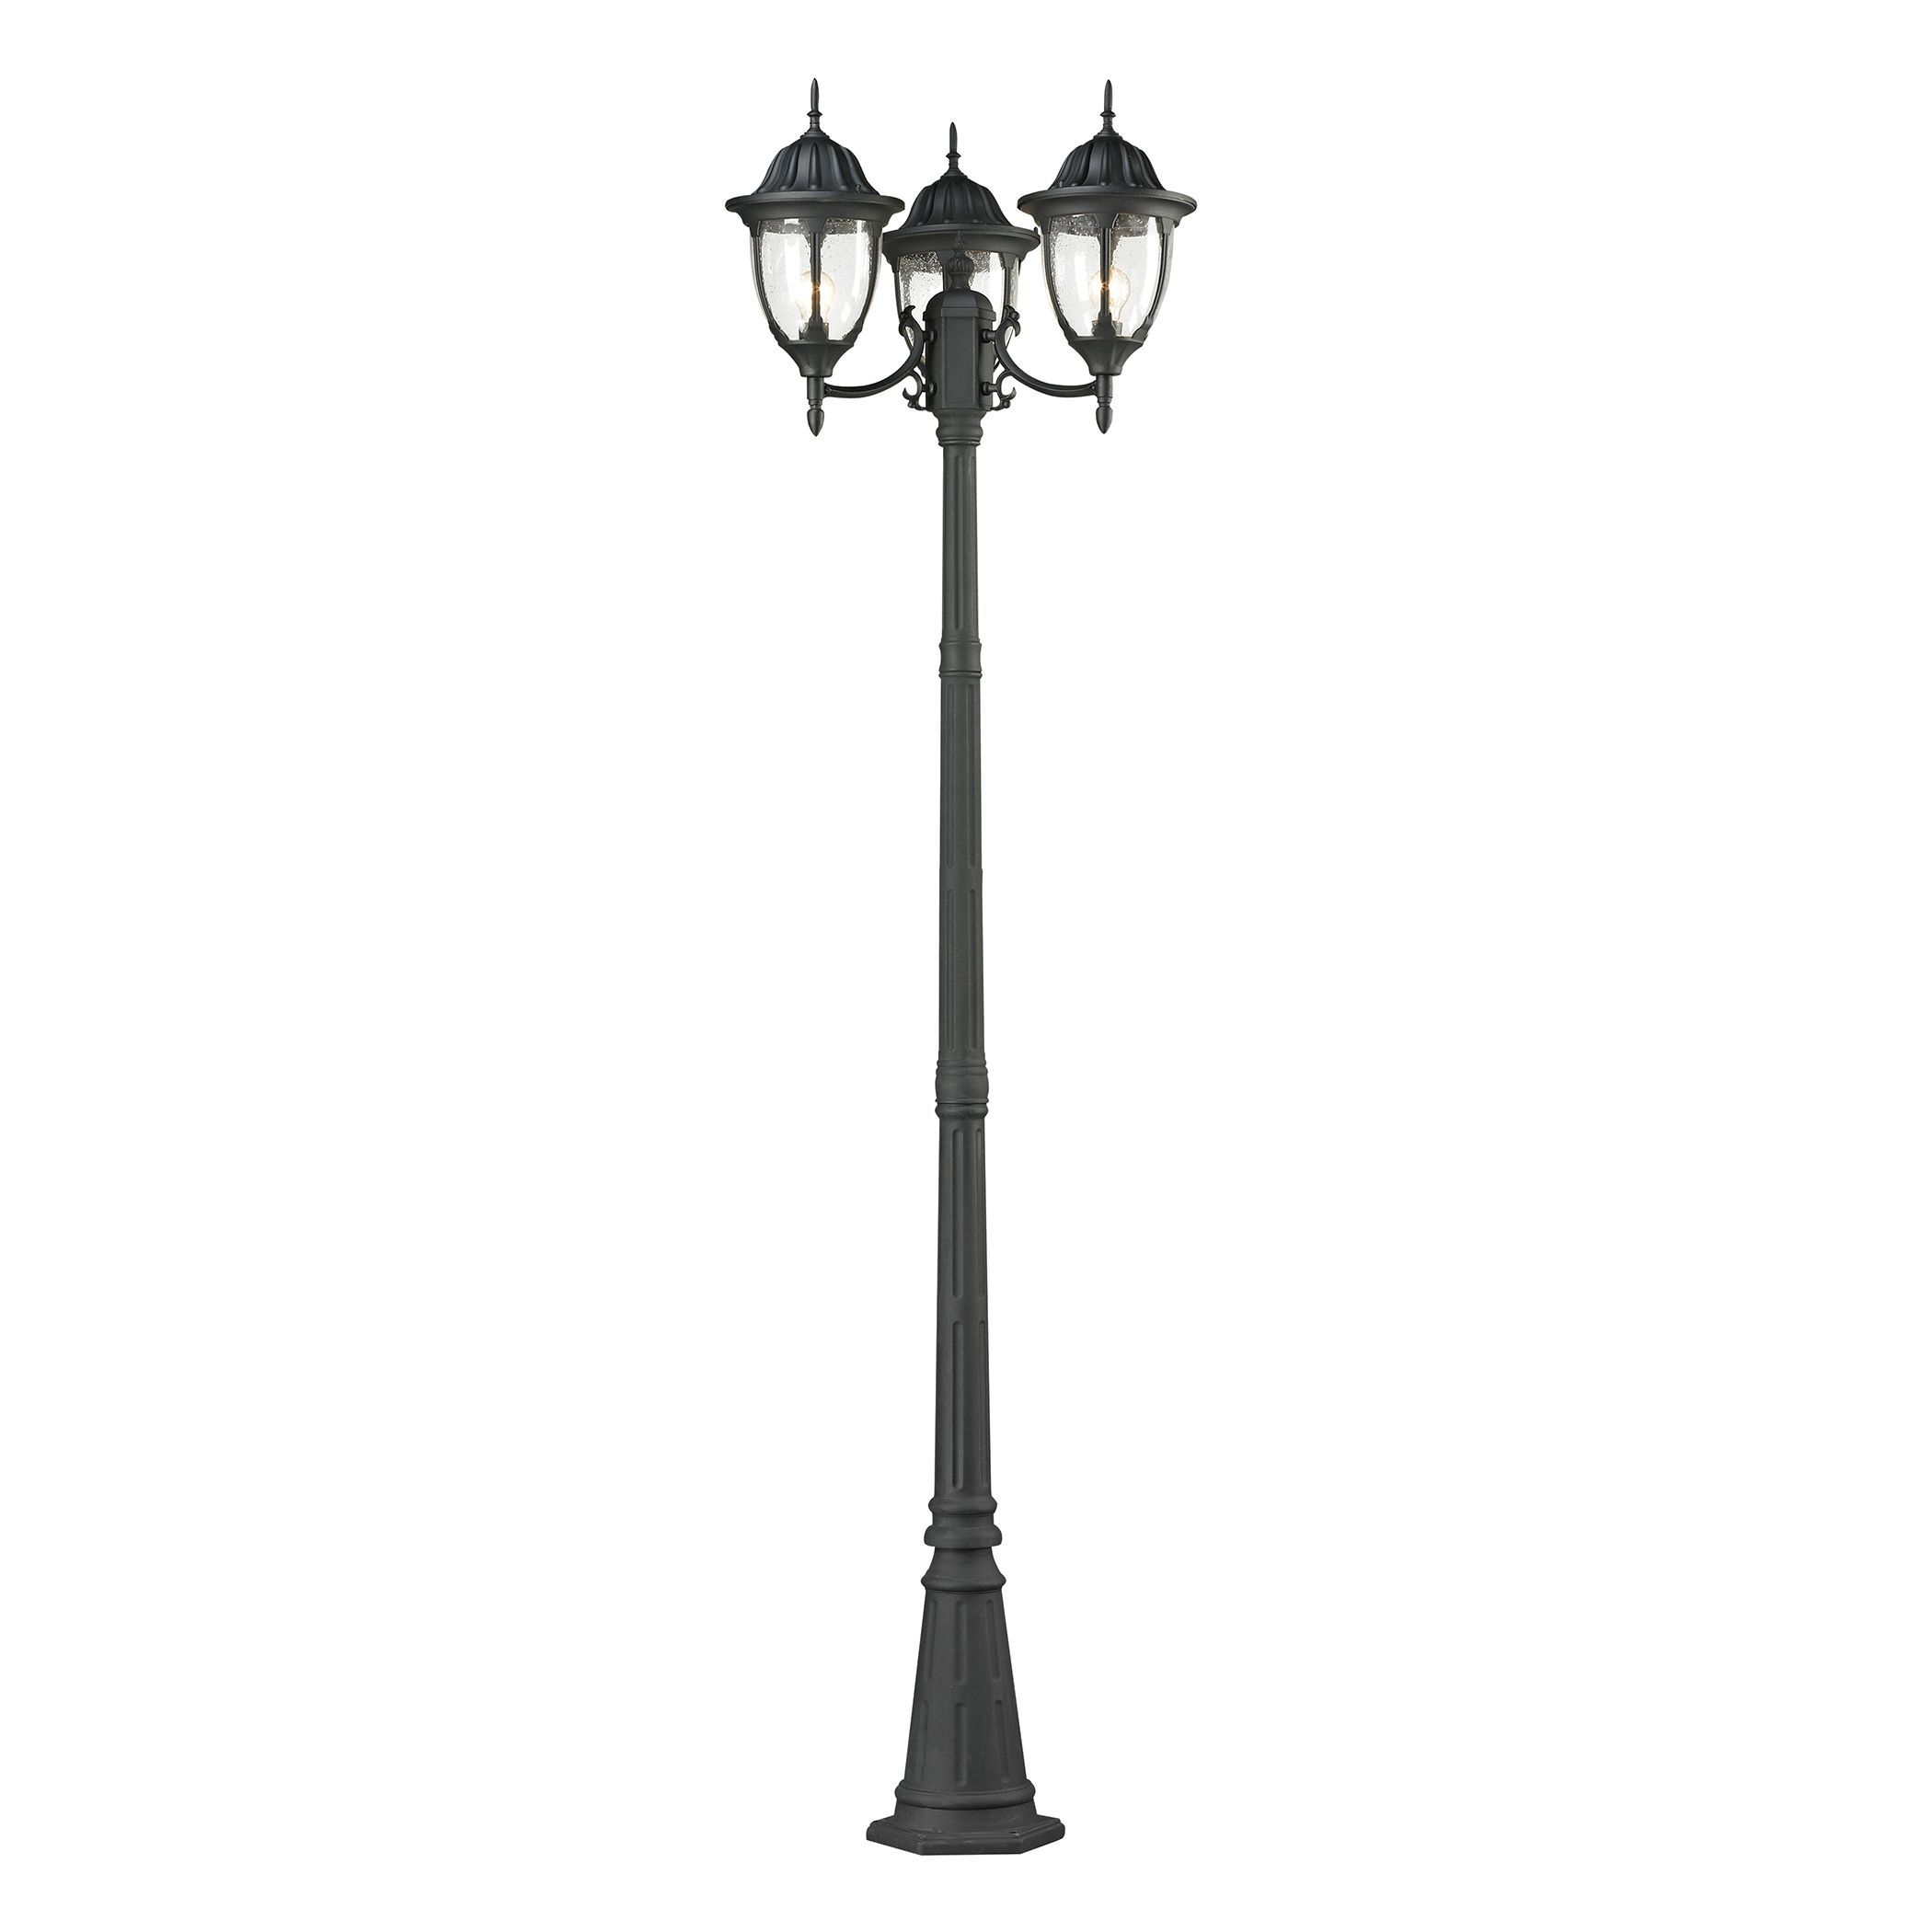 Central Square 3 Light Outdoor Post Light In Textured Matte Black Post Lights Lamp Post Lights Outdoor Post Lights